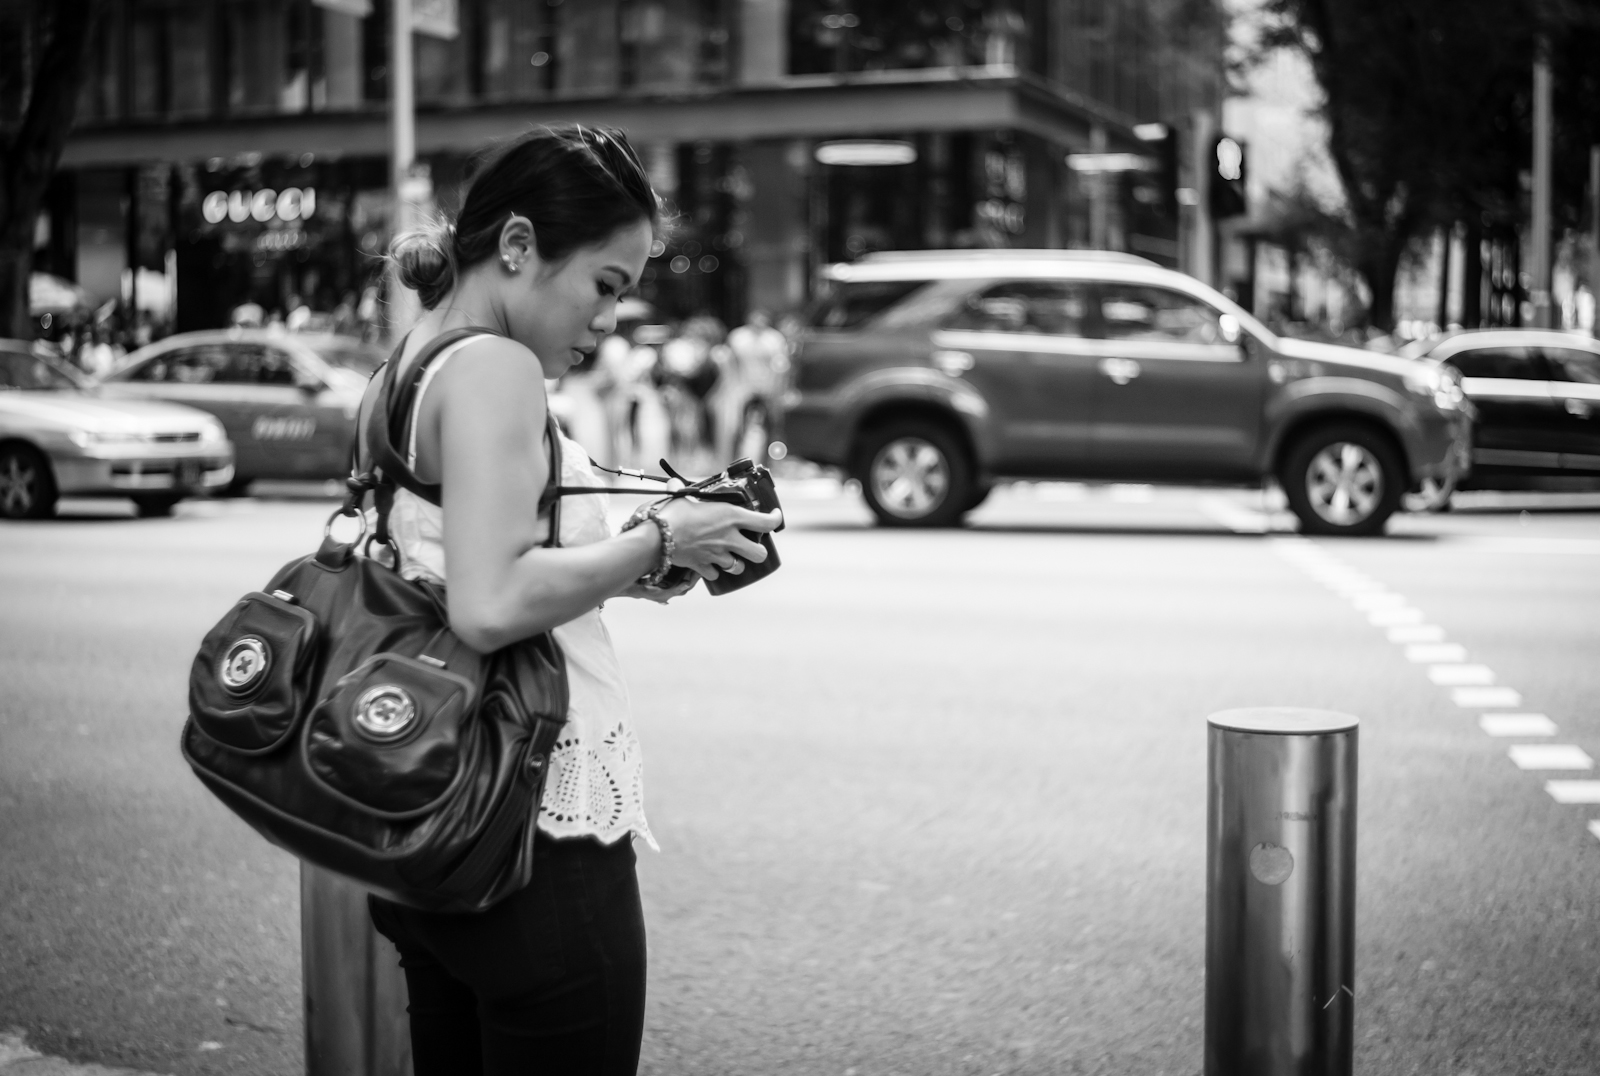 Street photography - Woman with a DSLR camera